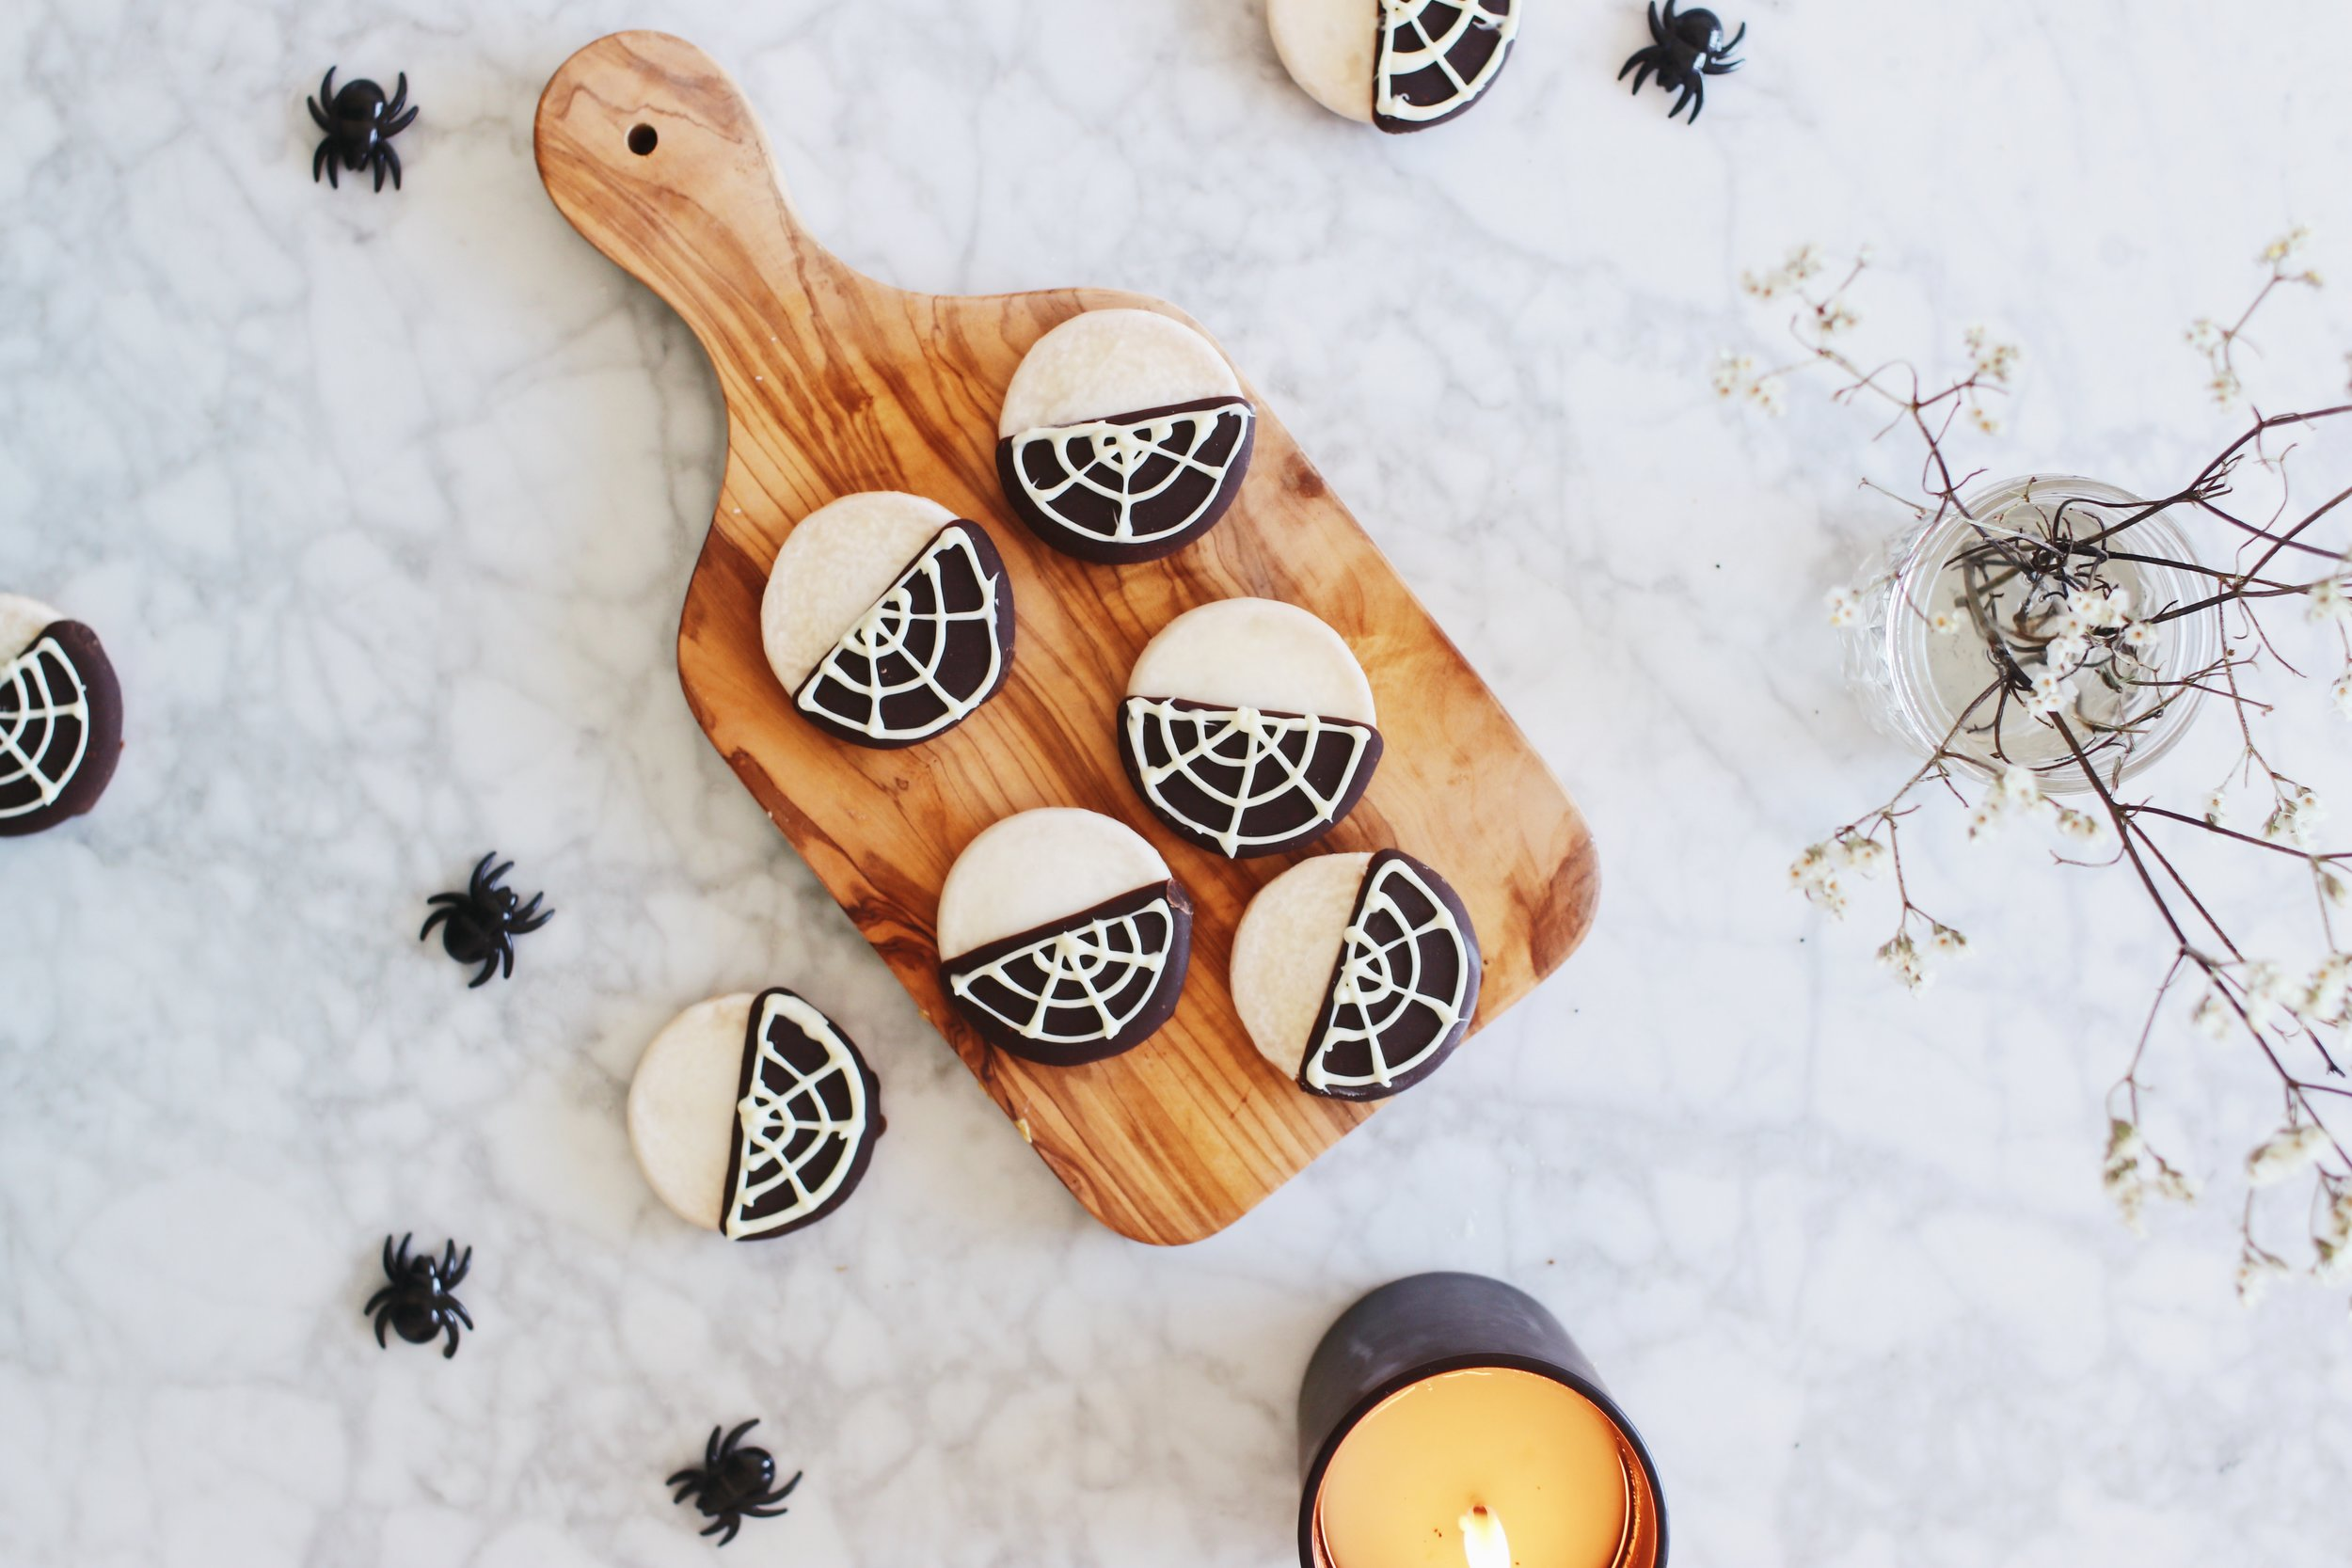 spiderweb-black-and-white-cookies-recipe-halloween-shabbat-ideas-8.JPG